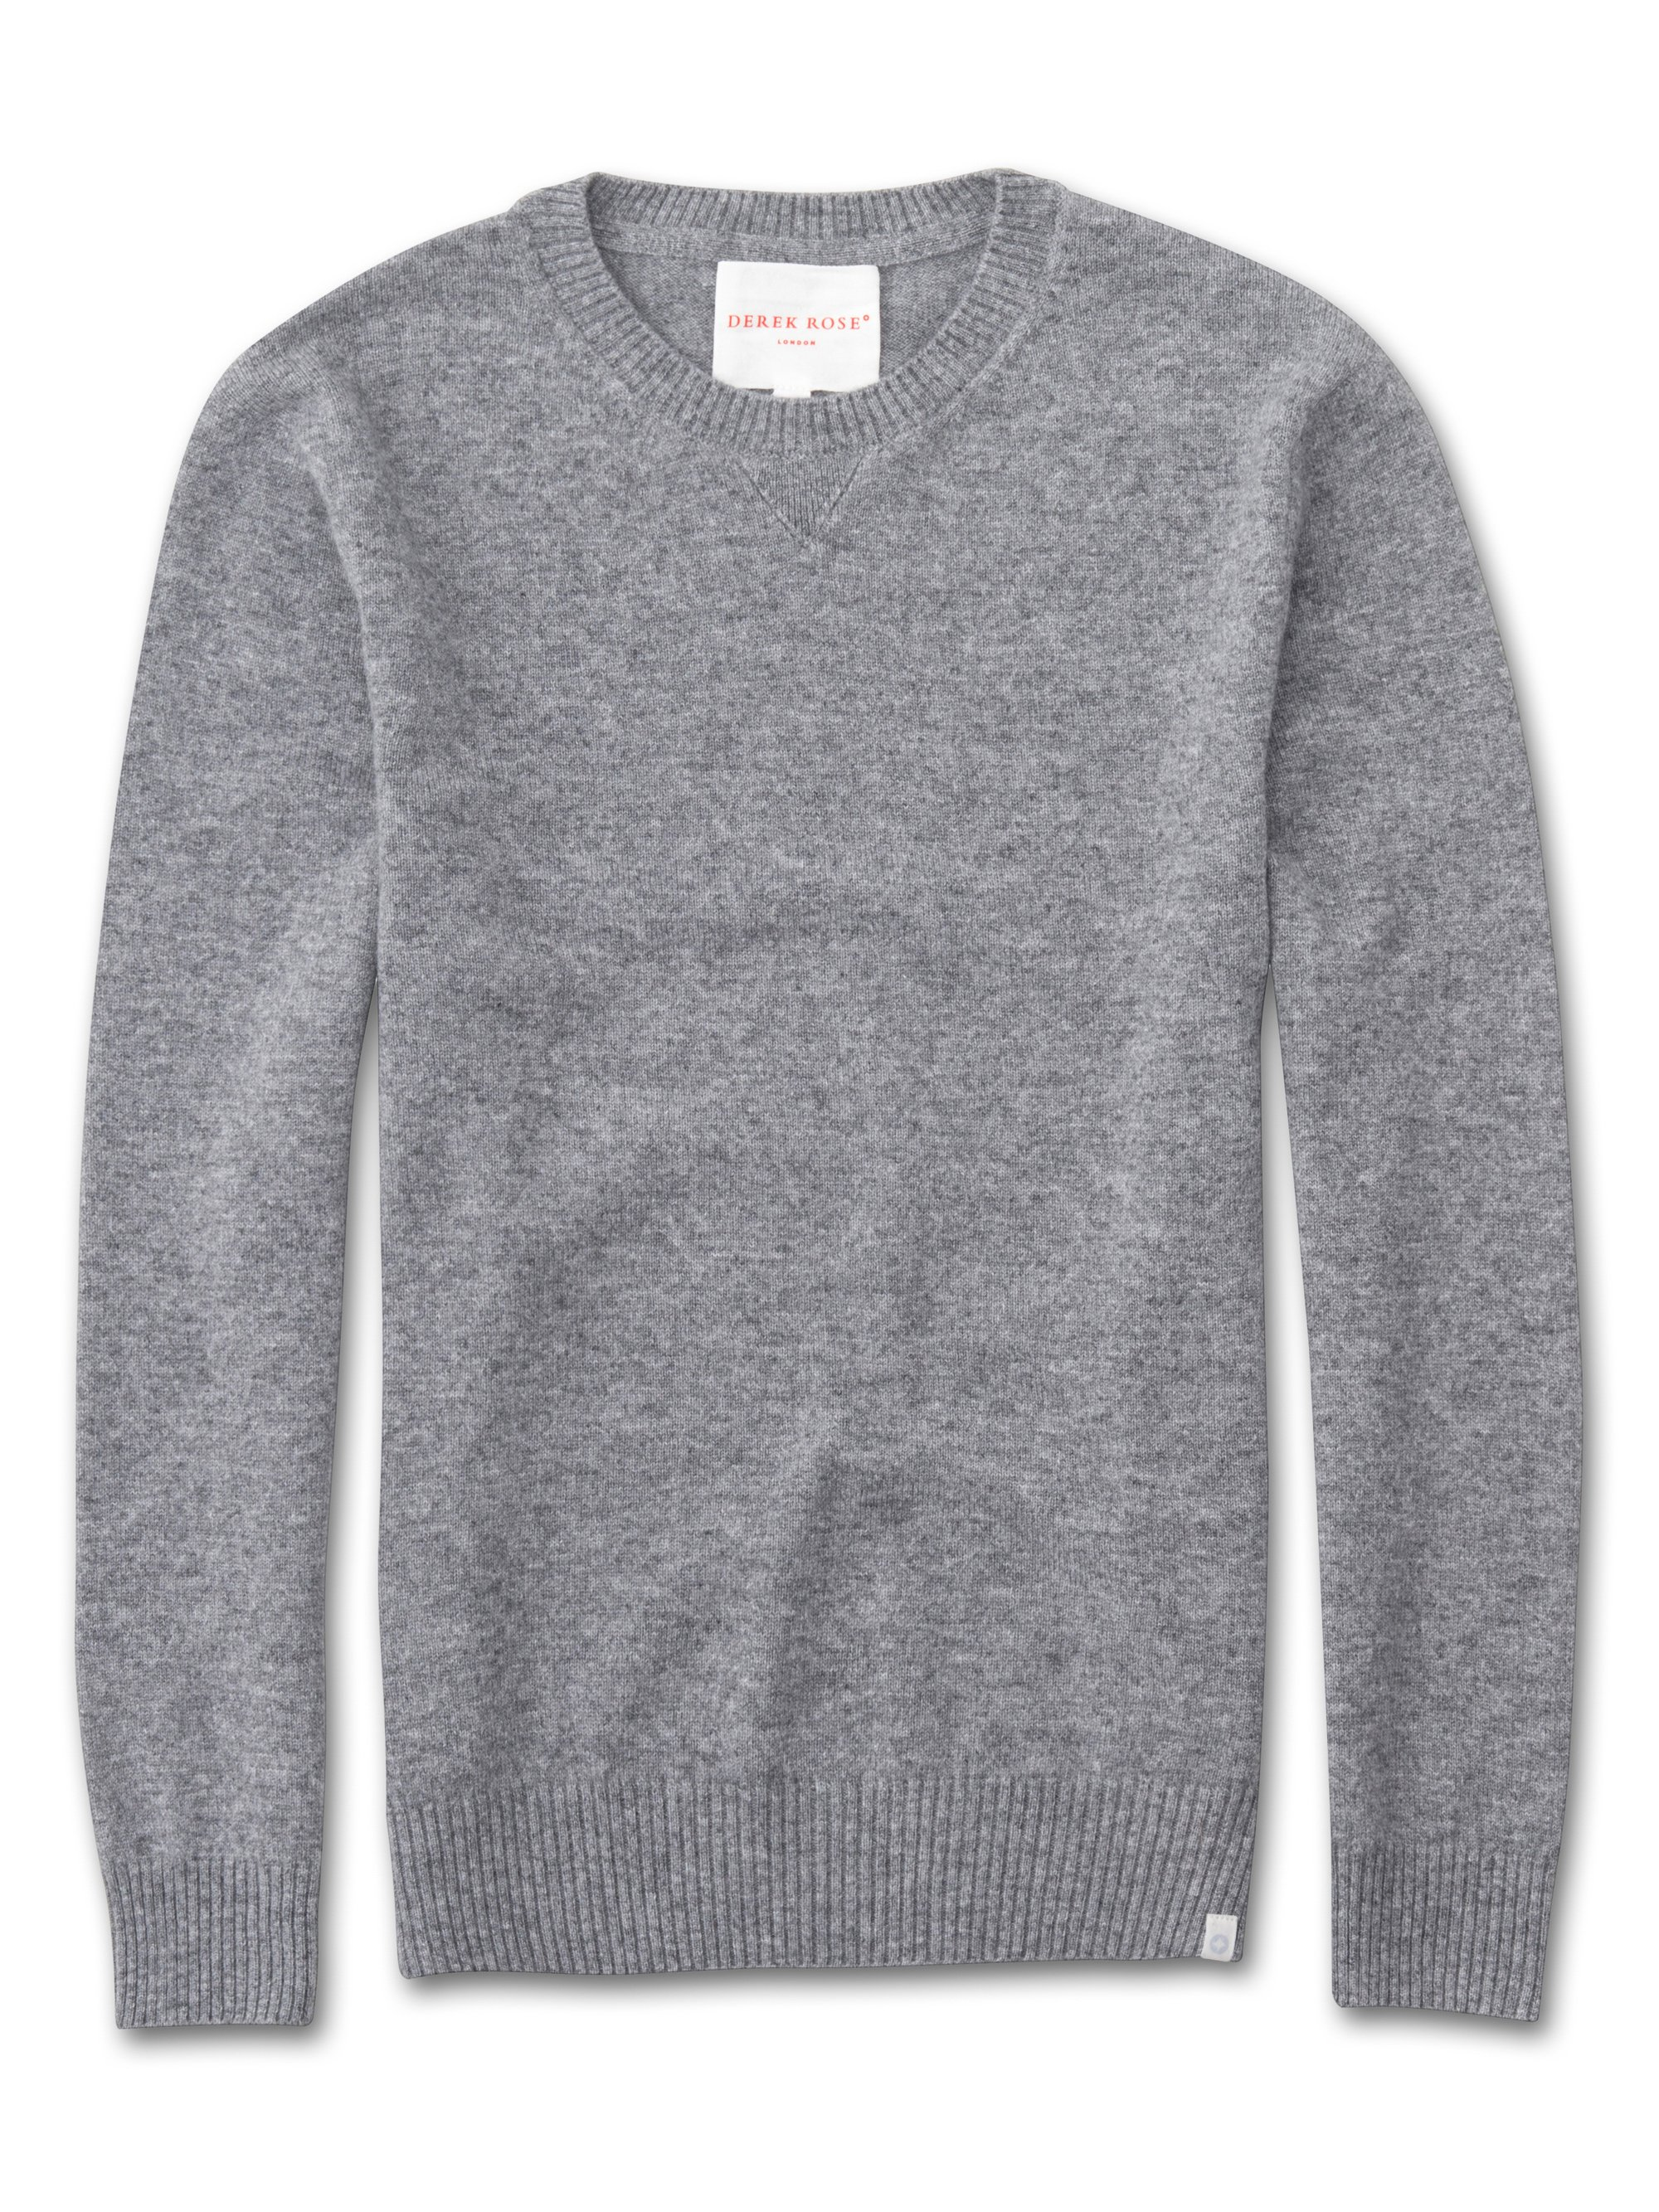 Women's Luxury Cashmere Sweater Silver Grey | Derek Rose